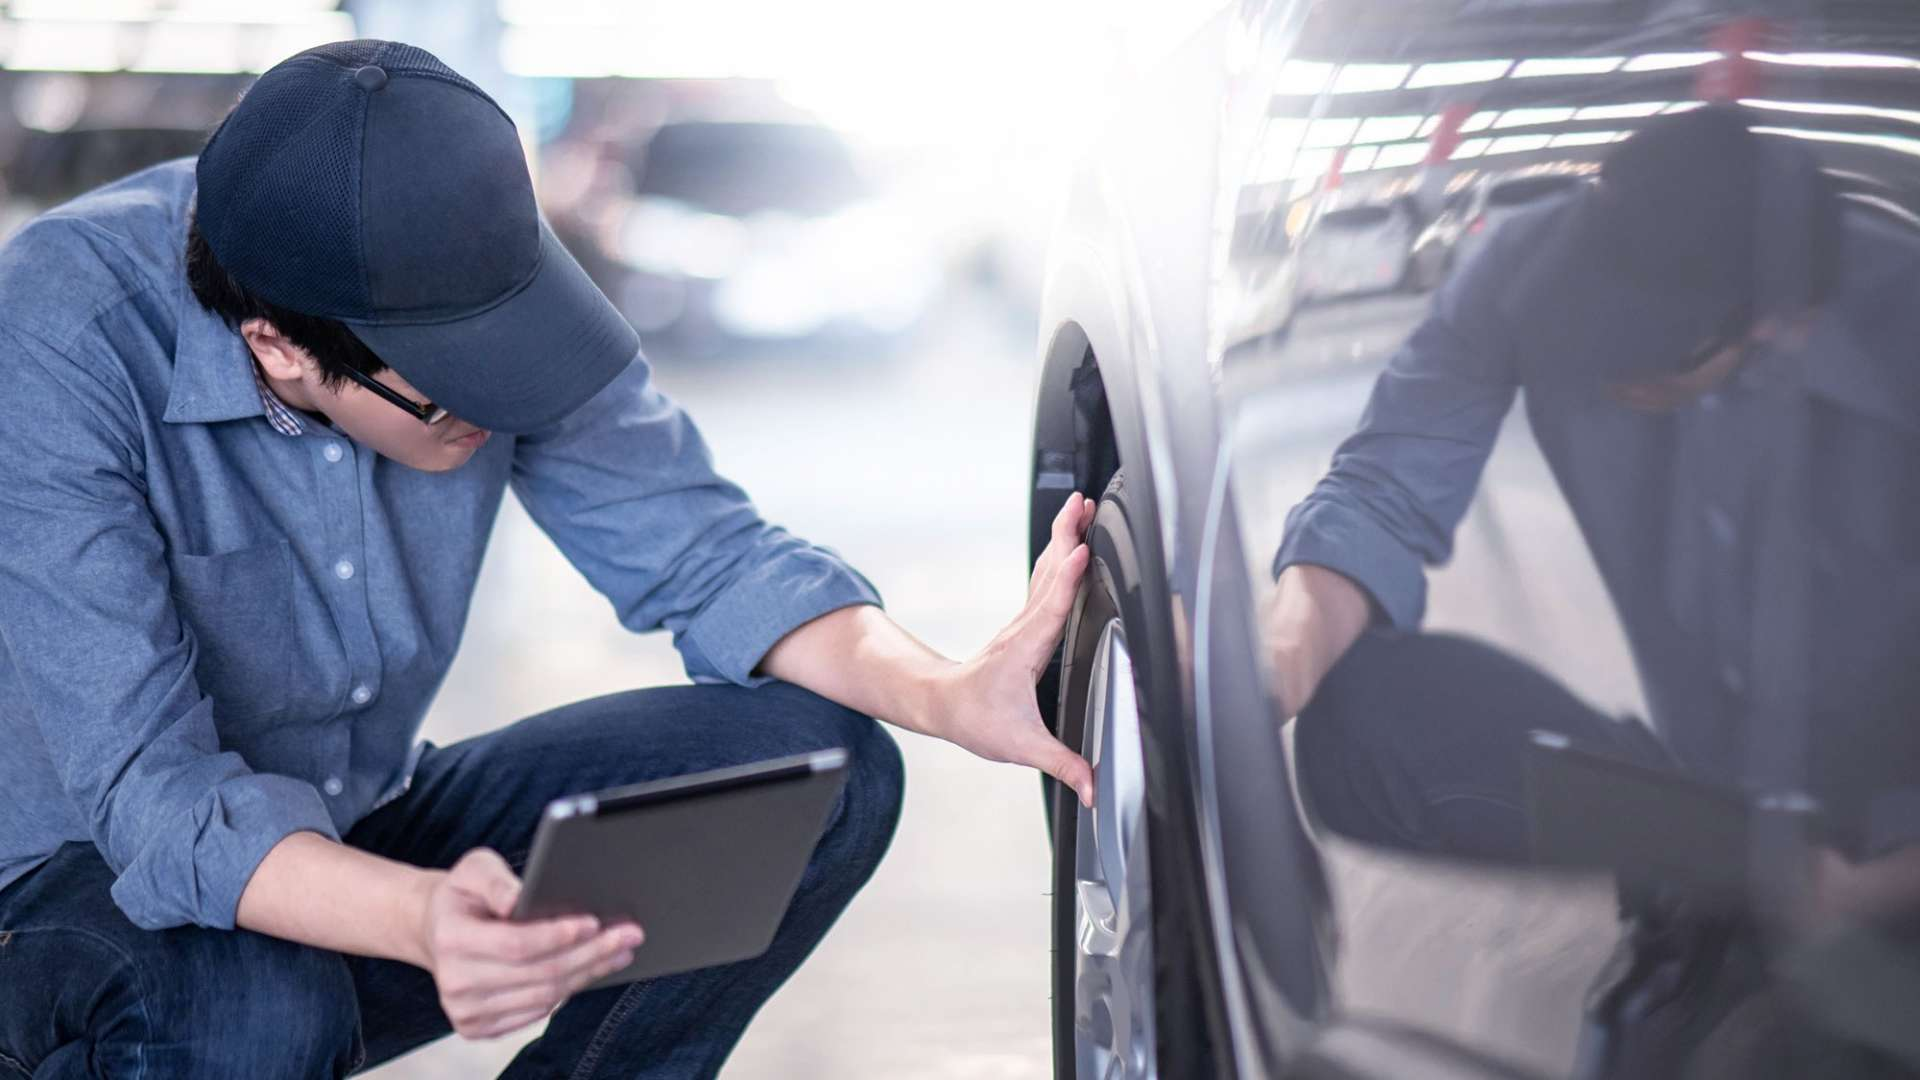 A photo of an electrical engineer checking a car's wheel